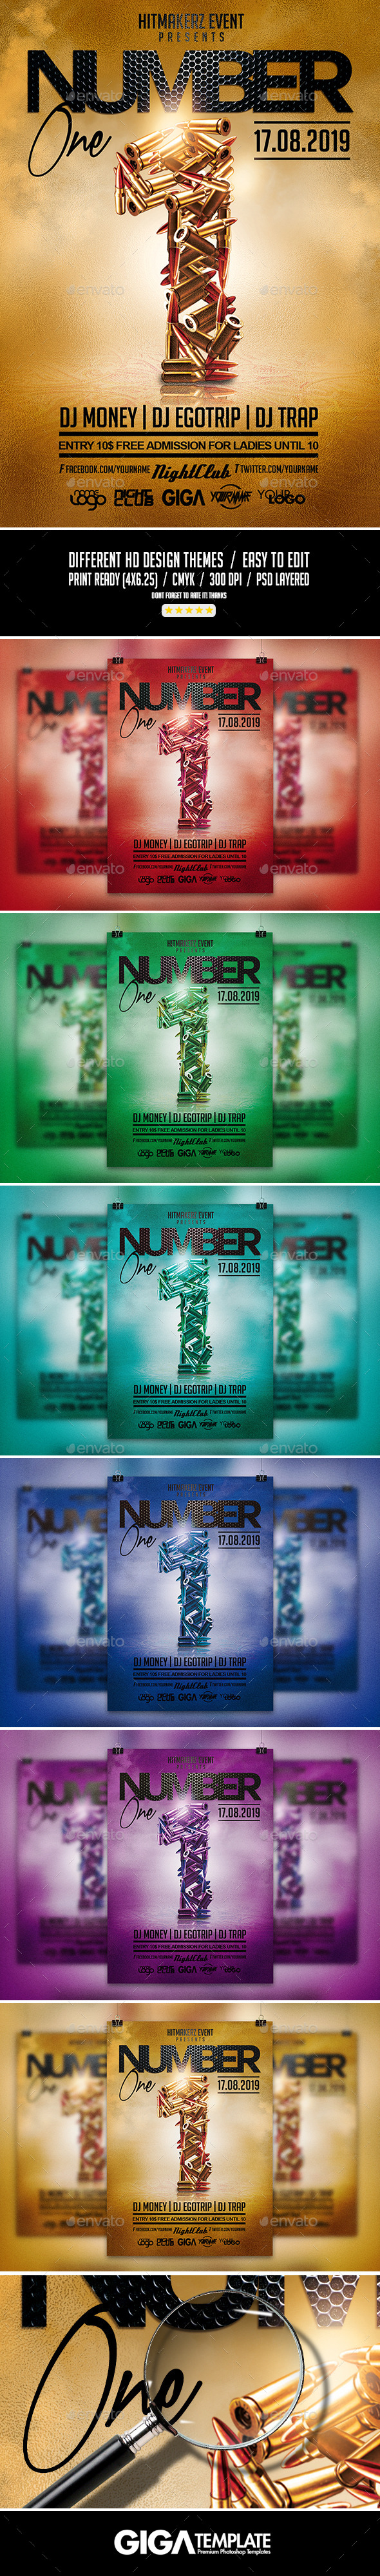 GraphicRiver Number One Hip-Hop Rap Night Flyer PSD Template 11543221